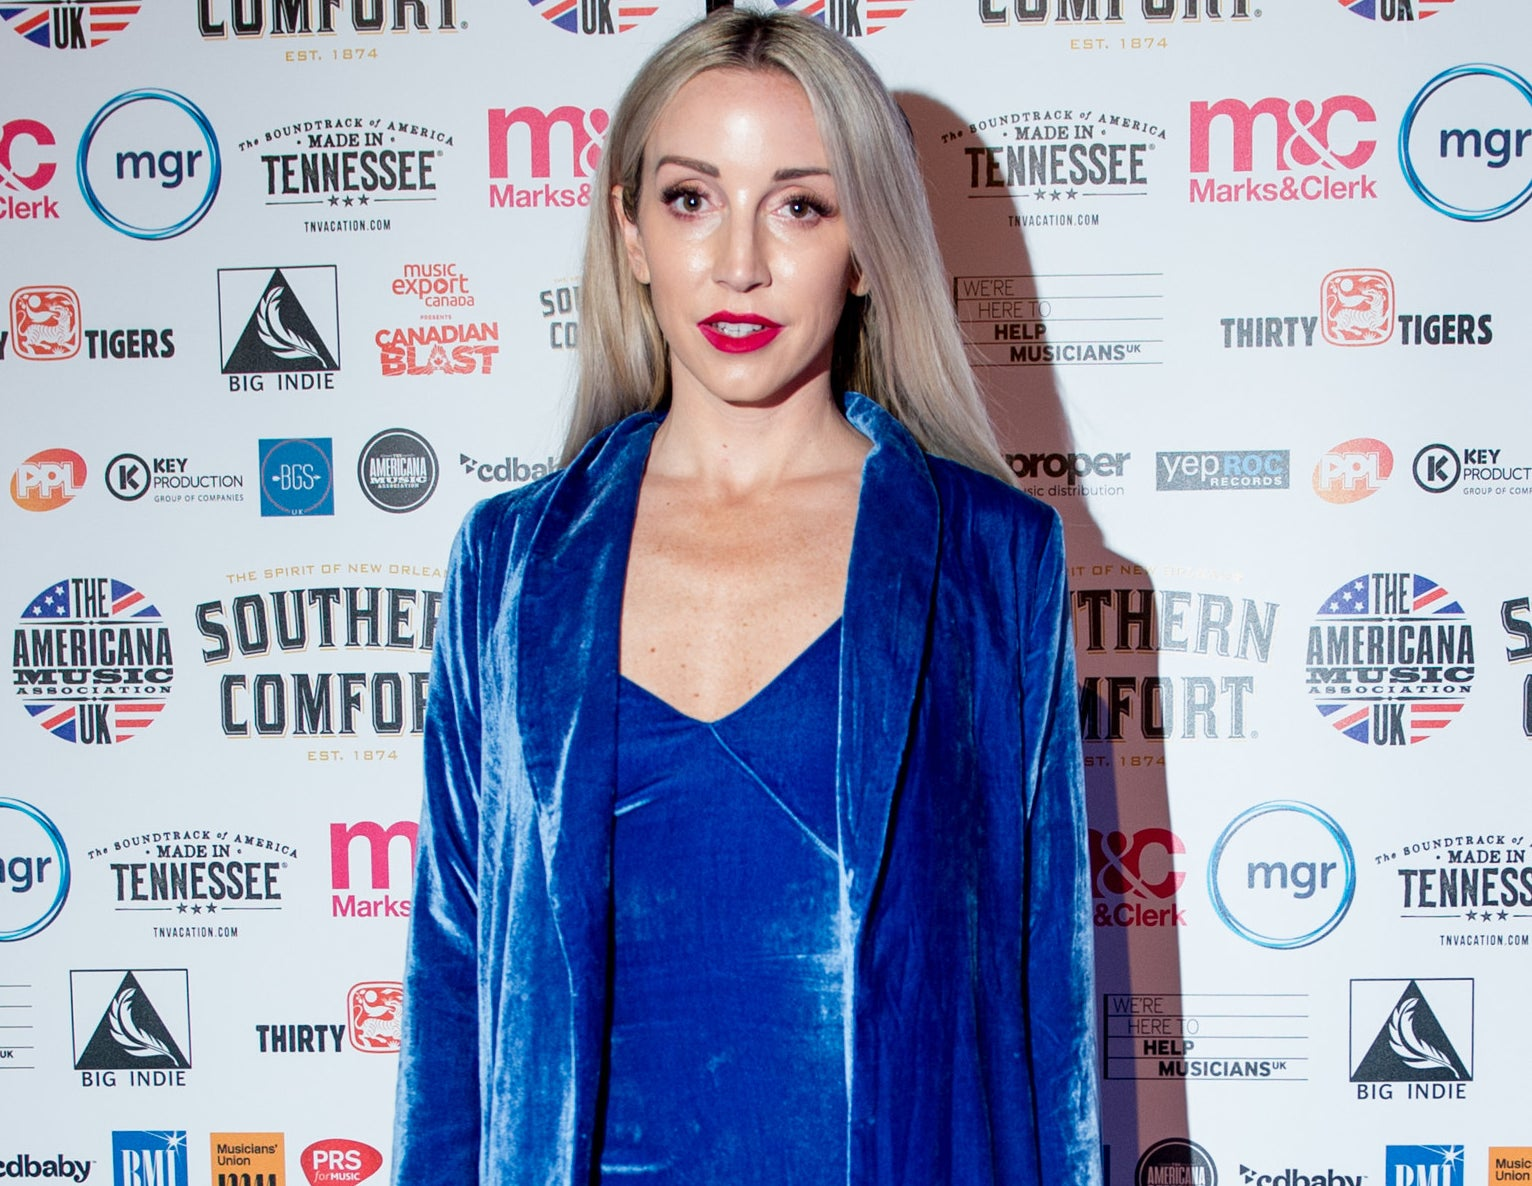 Ashley wears a blue velvet dress and blazer while on a red carpet